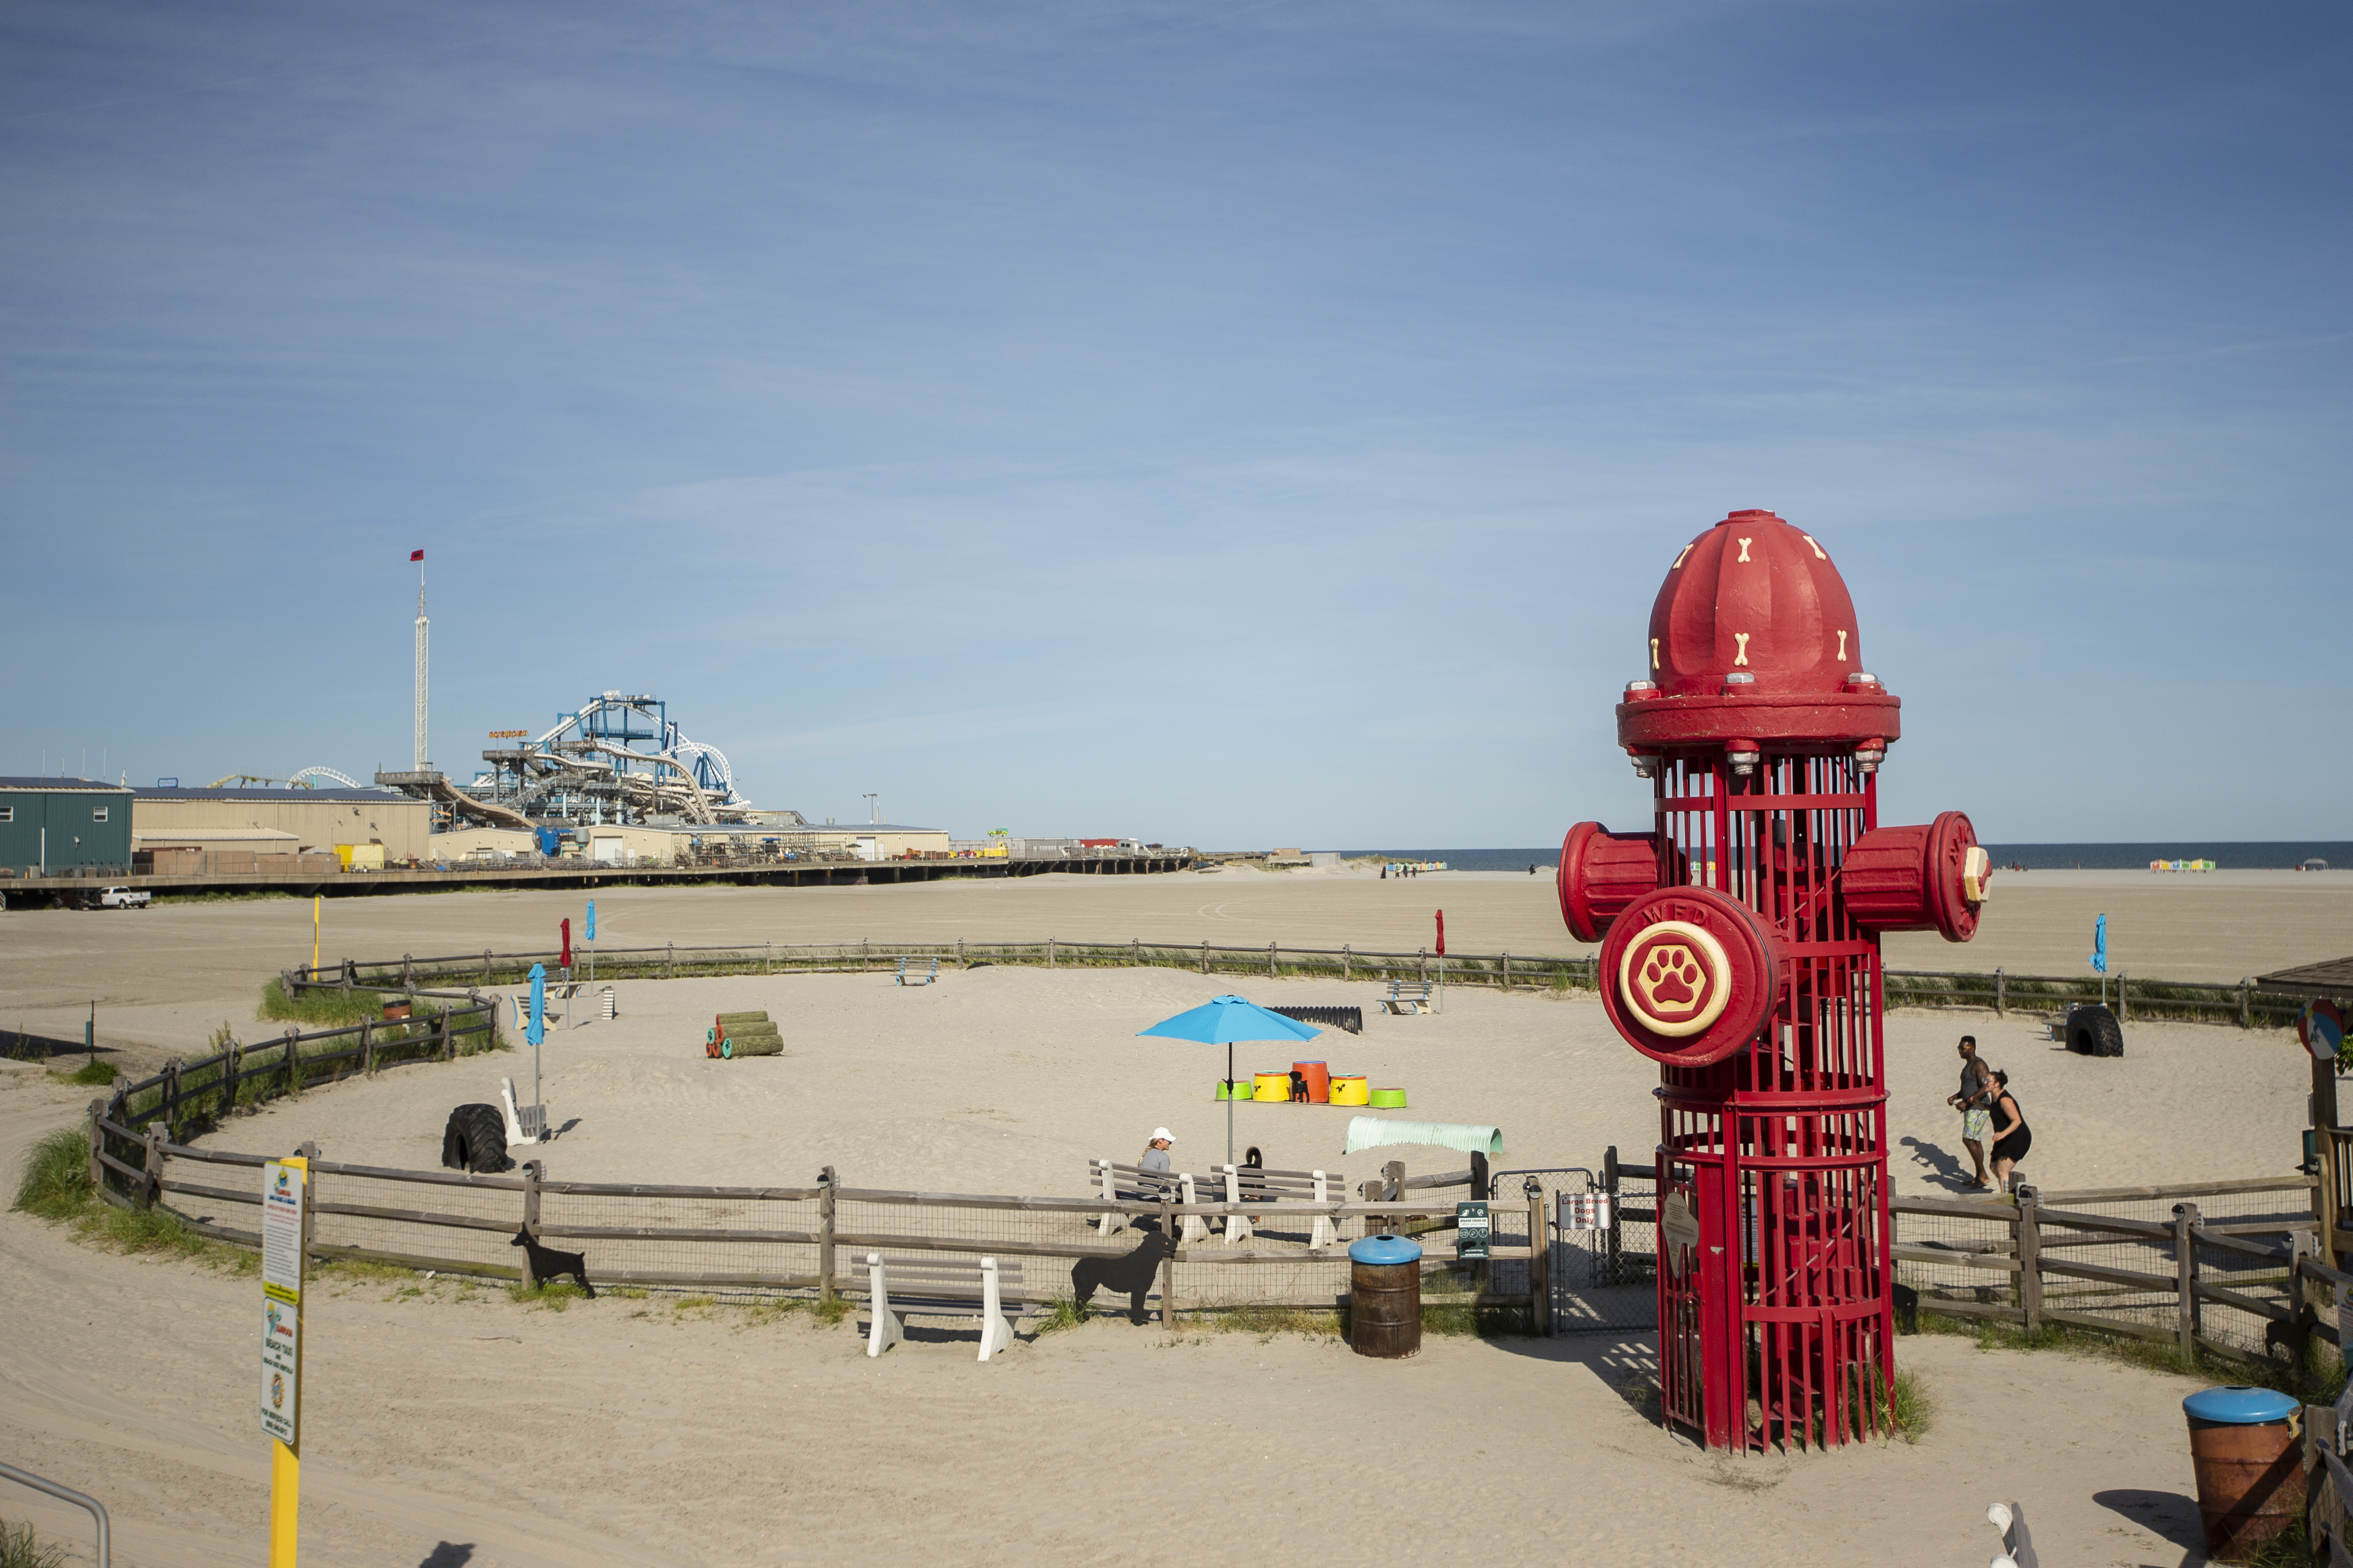 Wildwoods Bucket List 21 Things To Do To Have The Ultimate Jersey Shore Vacation Pennlive Com